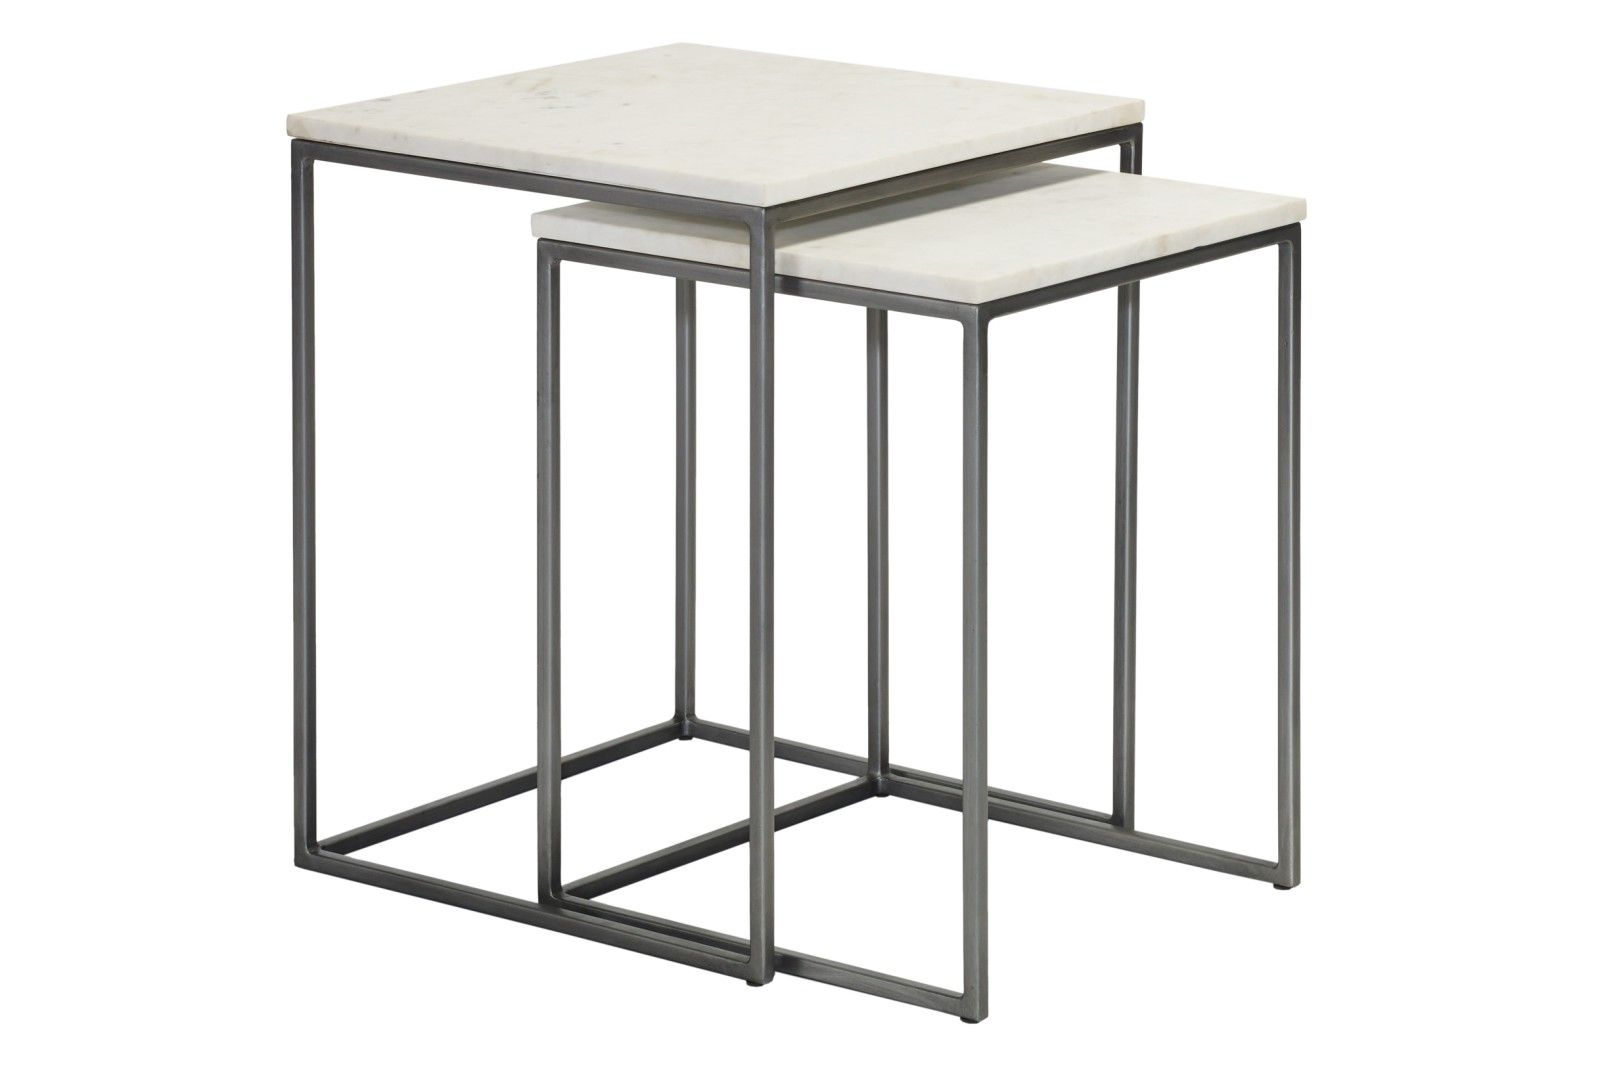 Chelsea Nest Of Two Square Side Tables In 2020 Square Side Table Coffee Table Rectangle Table